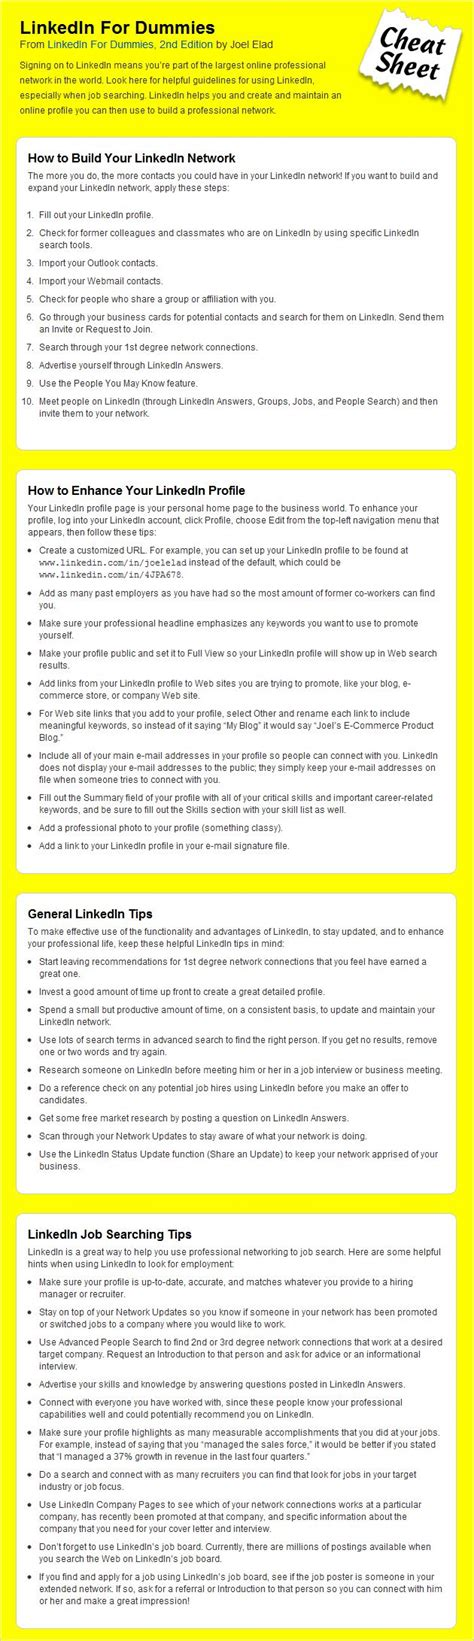 linkedin sheet for dummies business